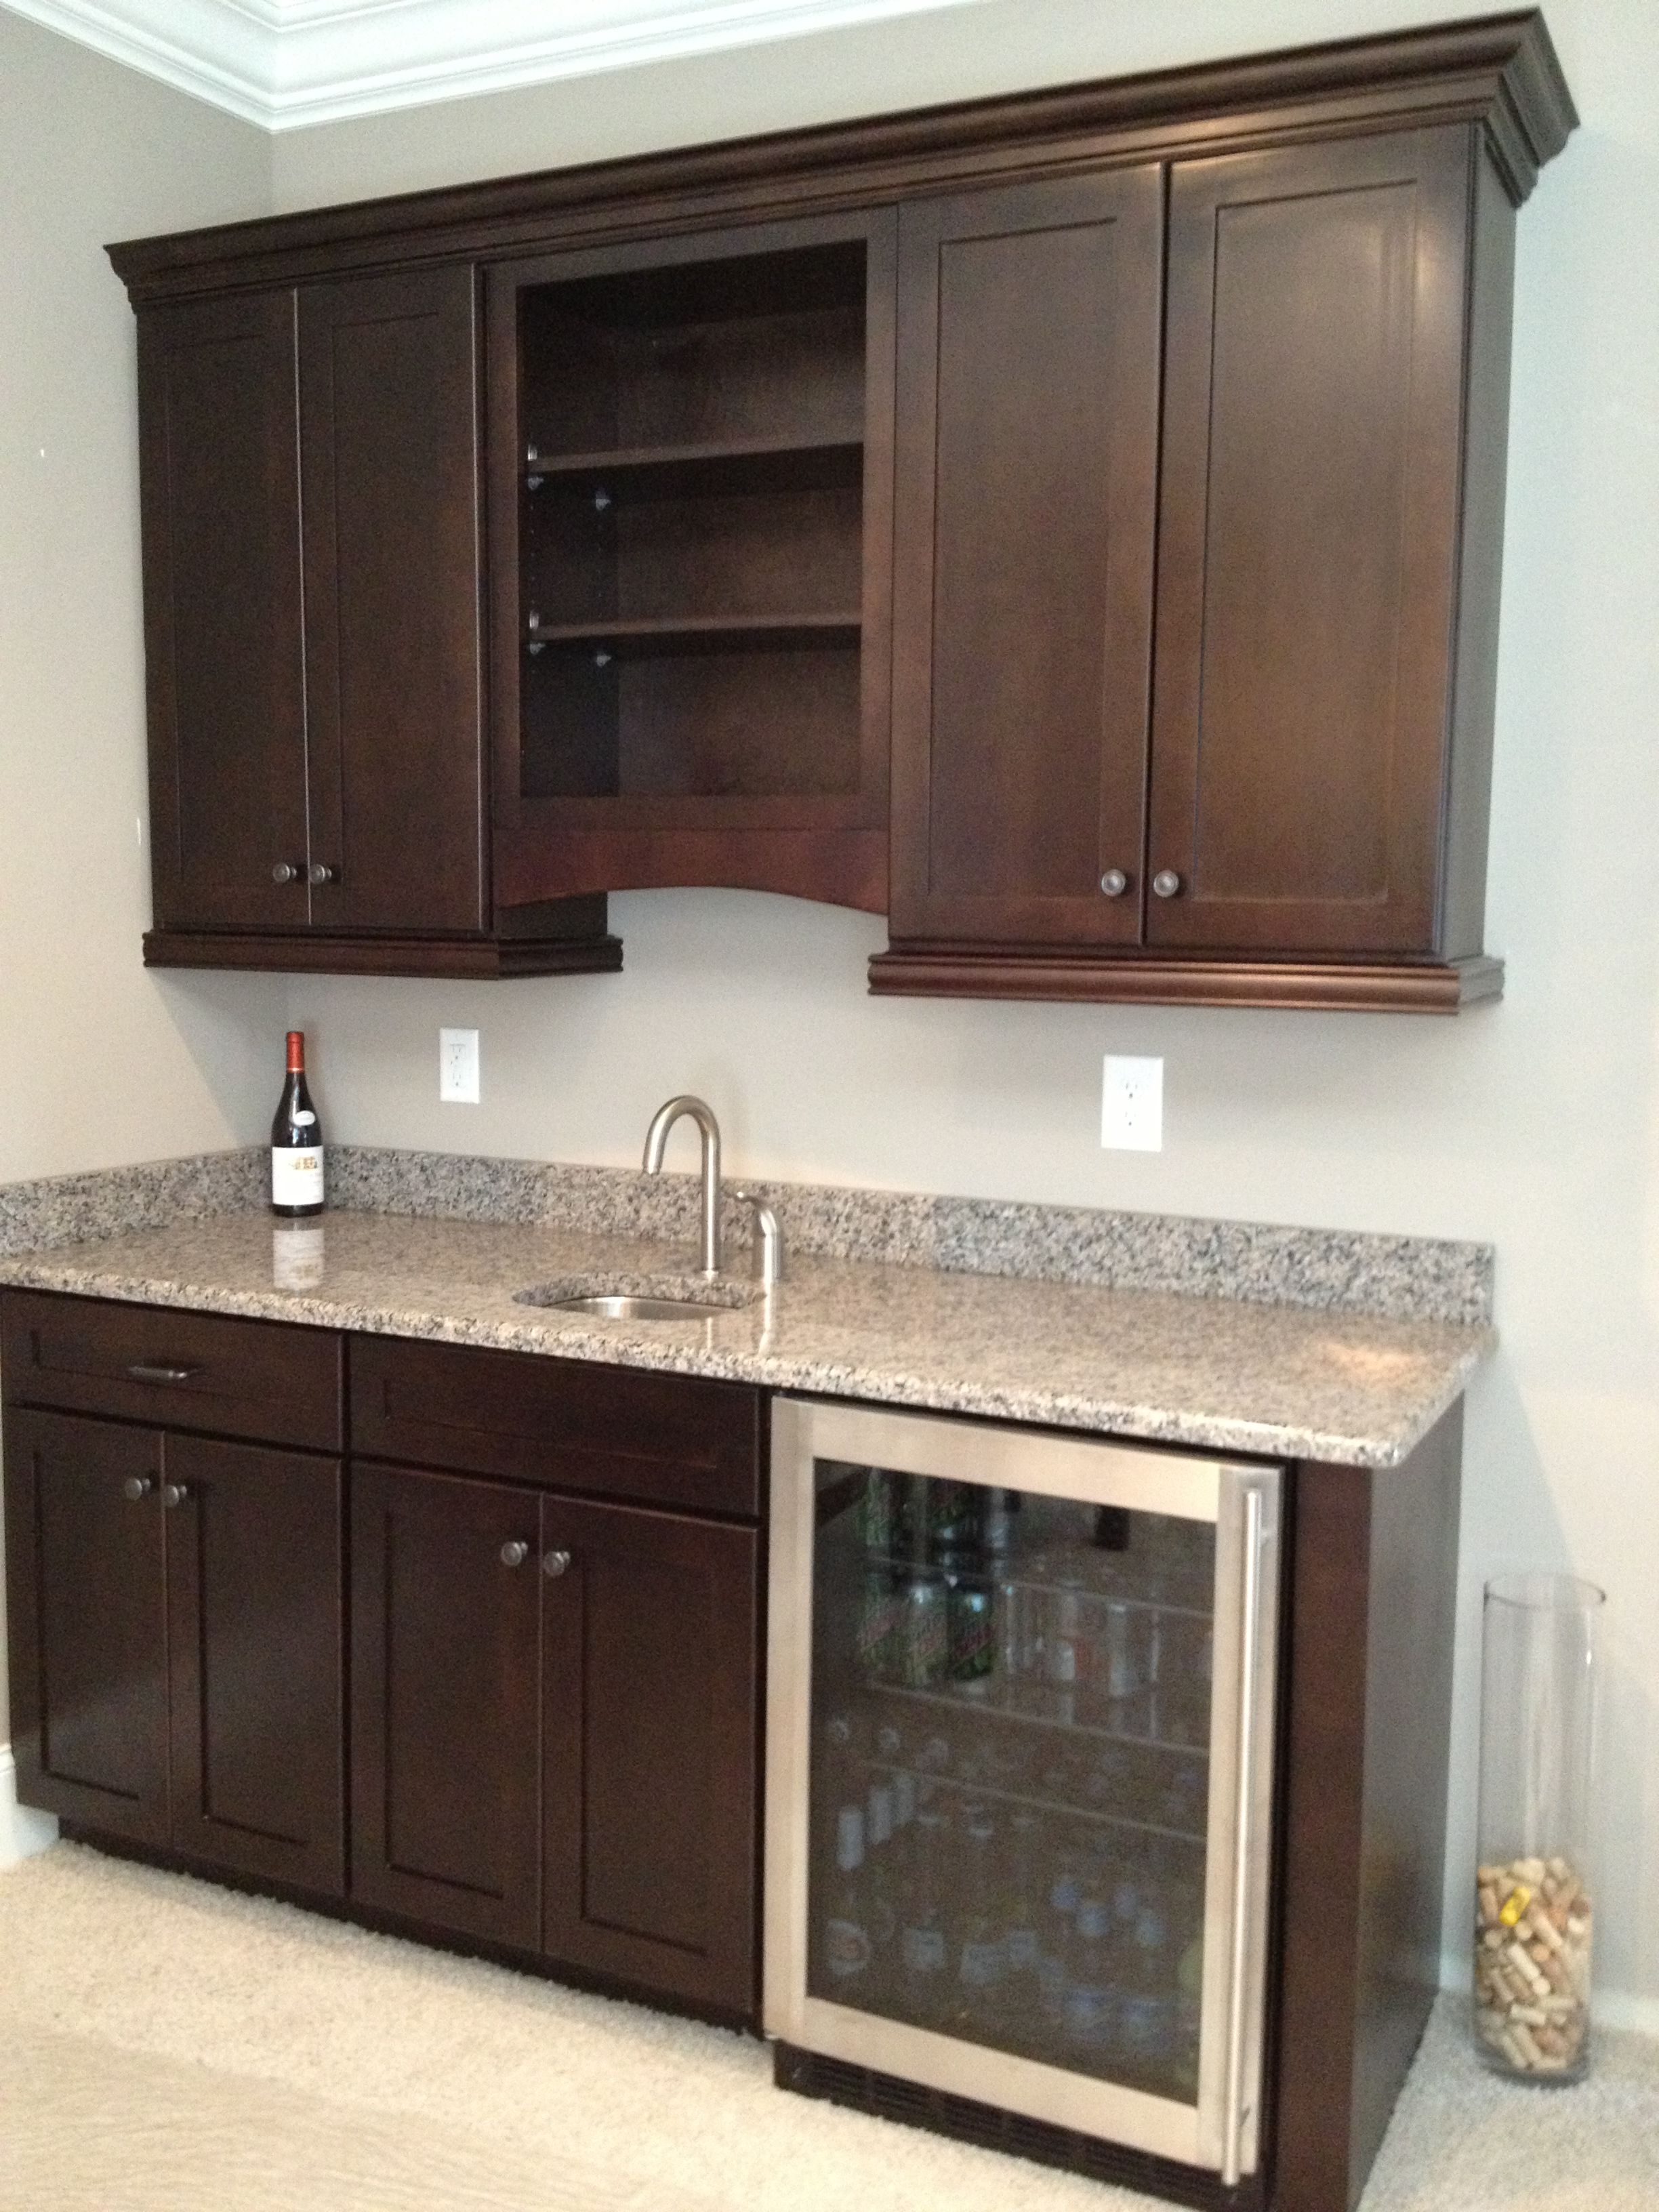 Family Room Gallery   Greensboro Custom Cabinets, Kitchen Design, Bathroom  Design   Distinctive Designs